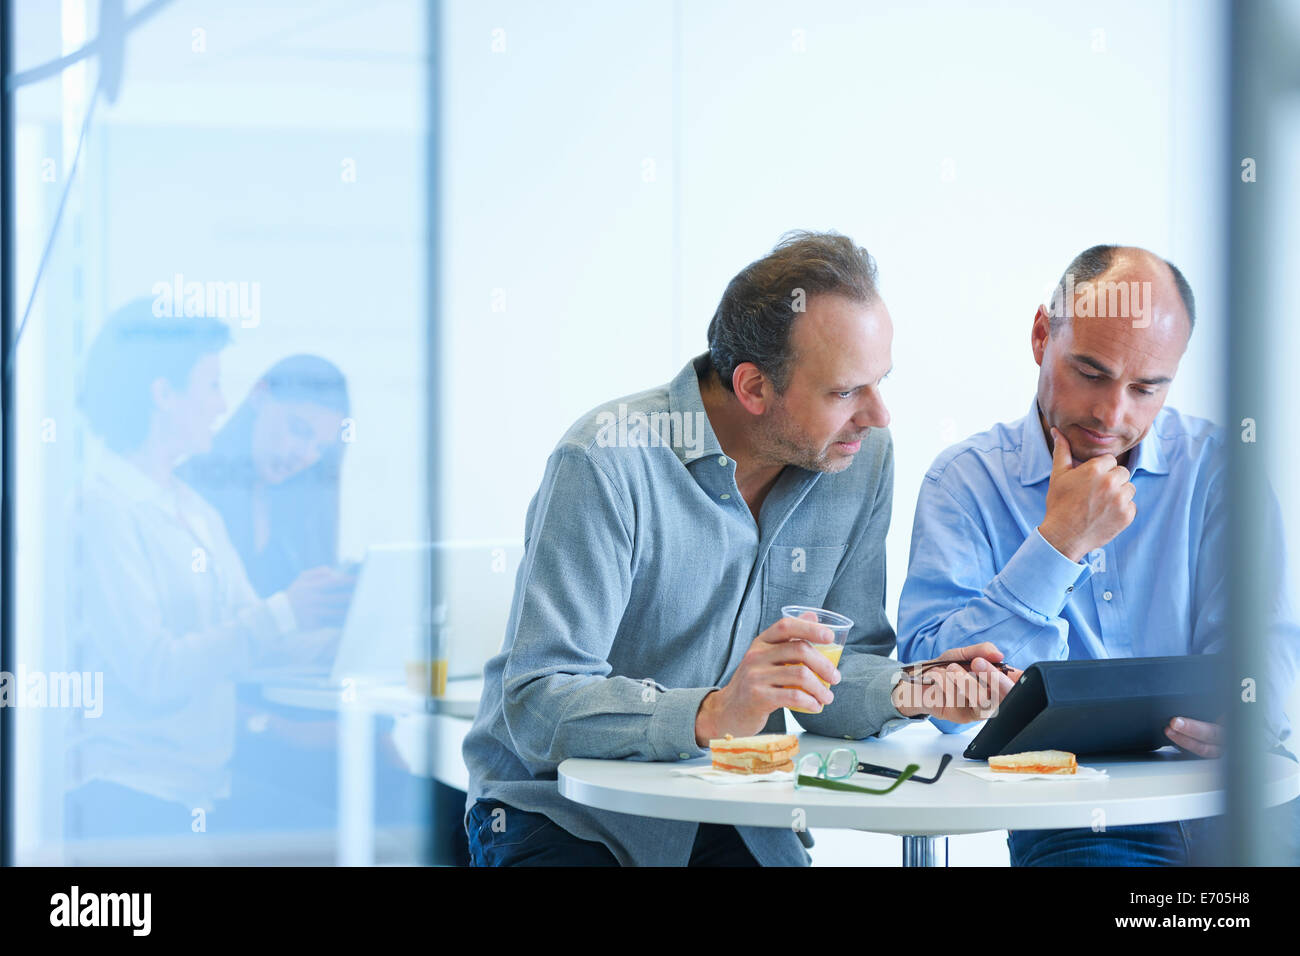 Business people having discussion over lunch - Stock Image